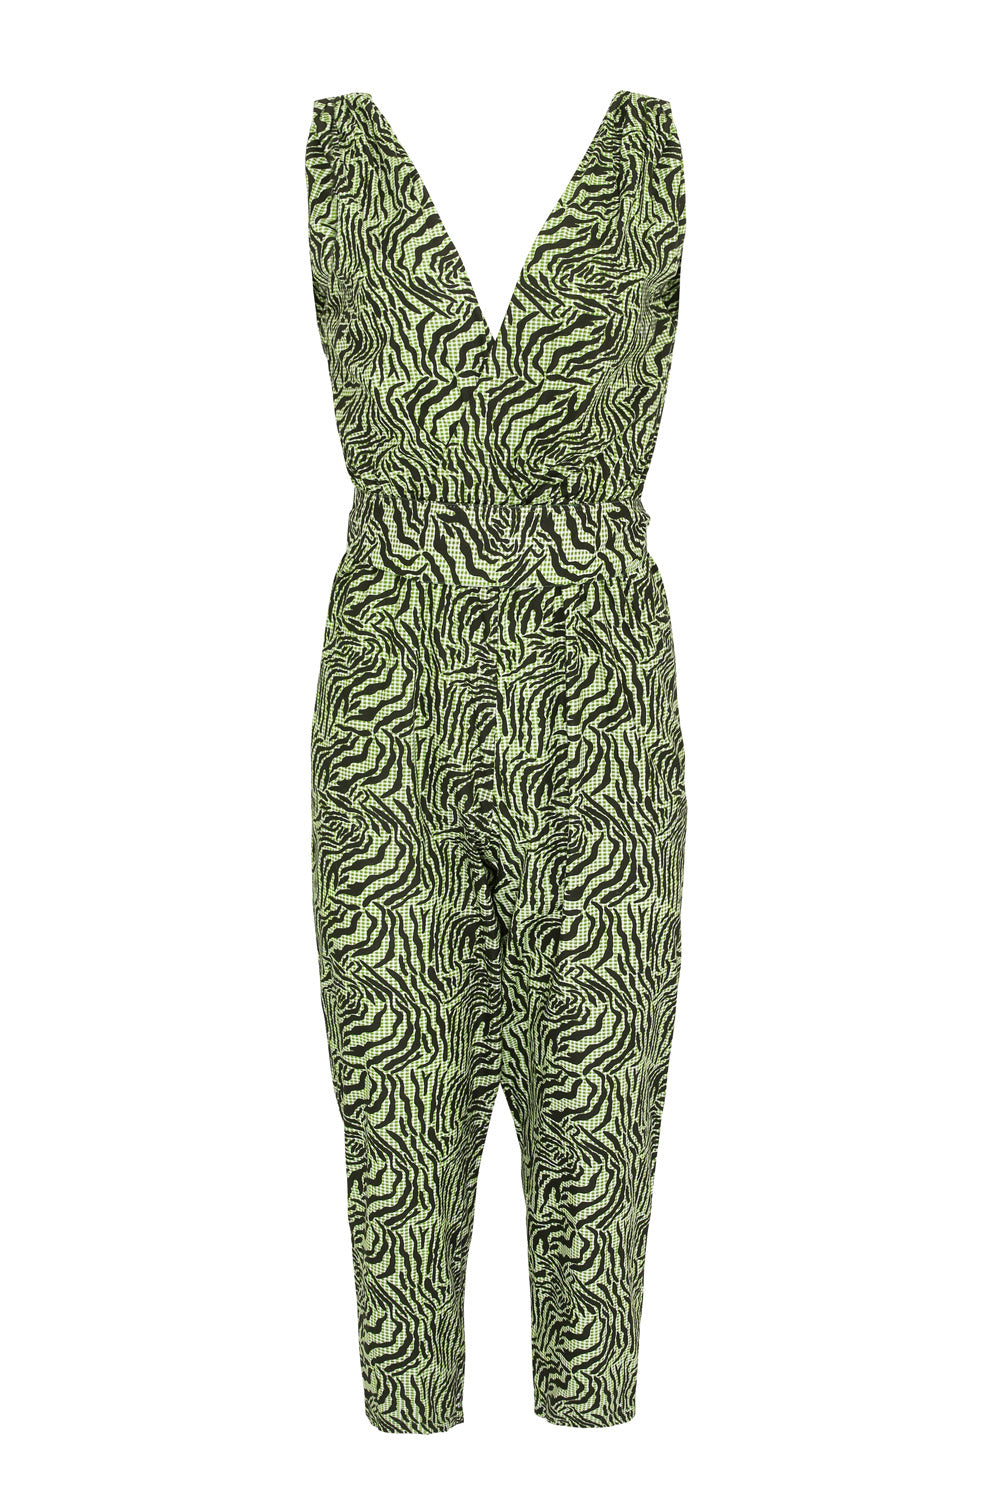 Just Like Heaven Green jumpsuit